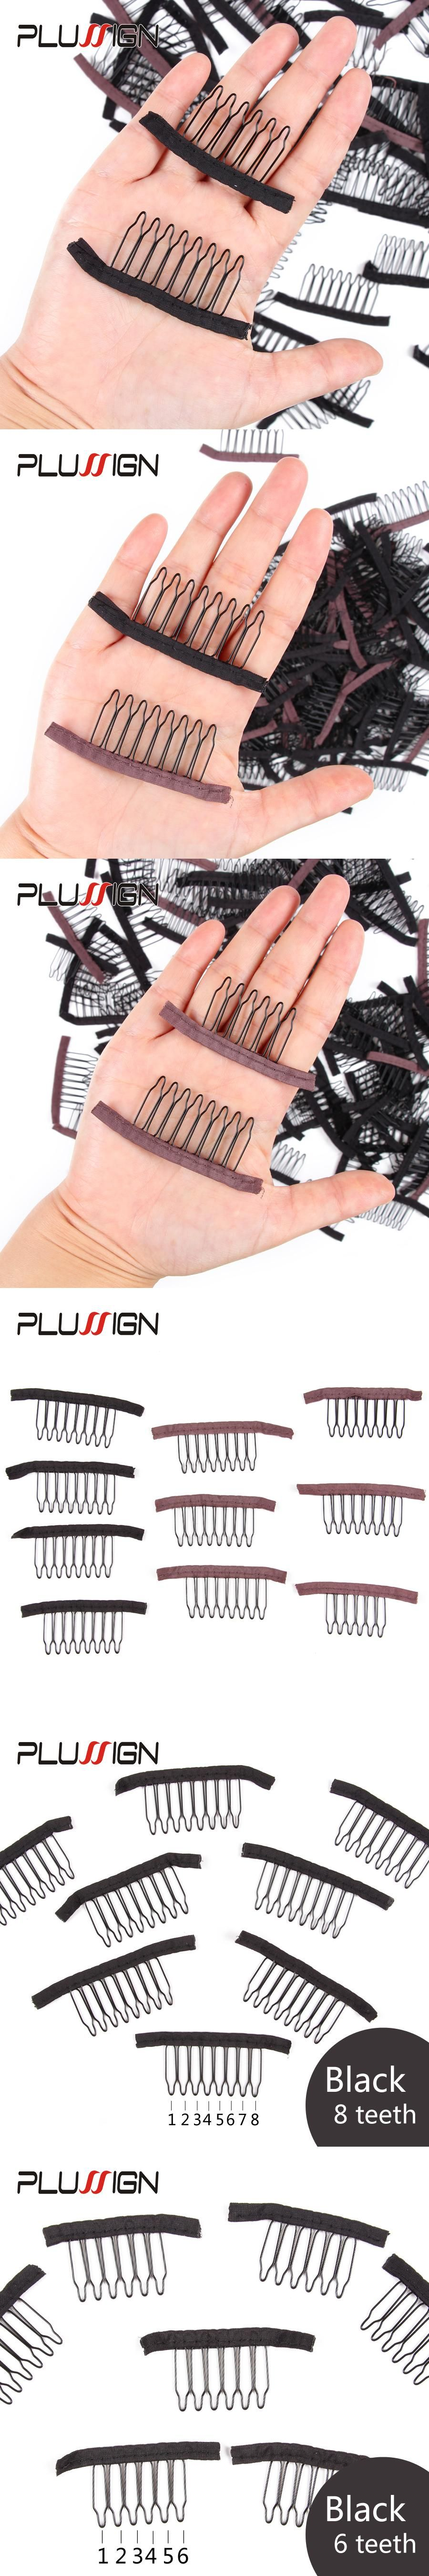 New Plussign Black Brown 6 Teeth 8 Theeth Wig Clips Combs Hair Clips